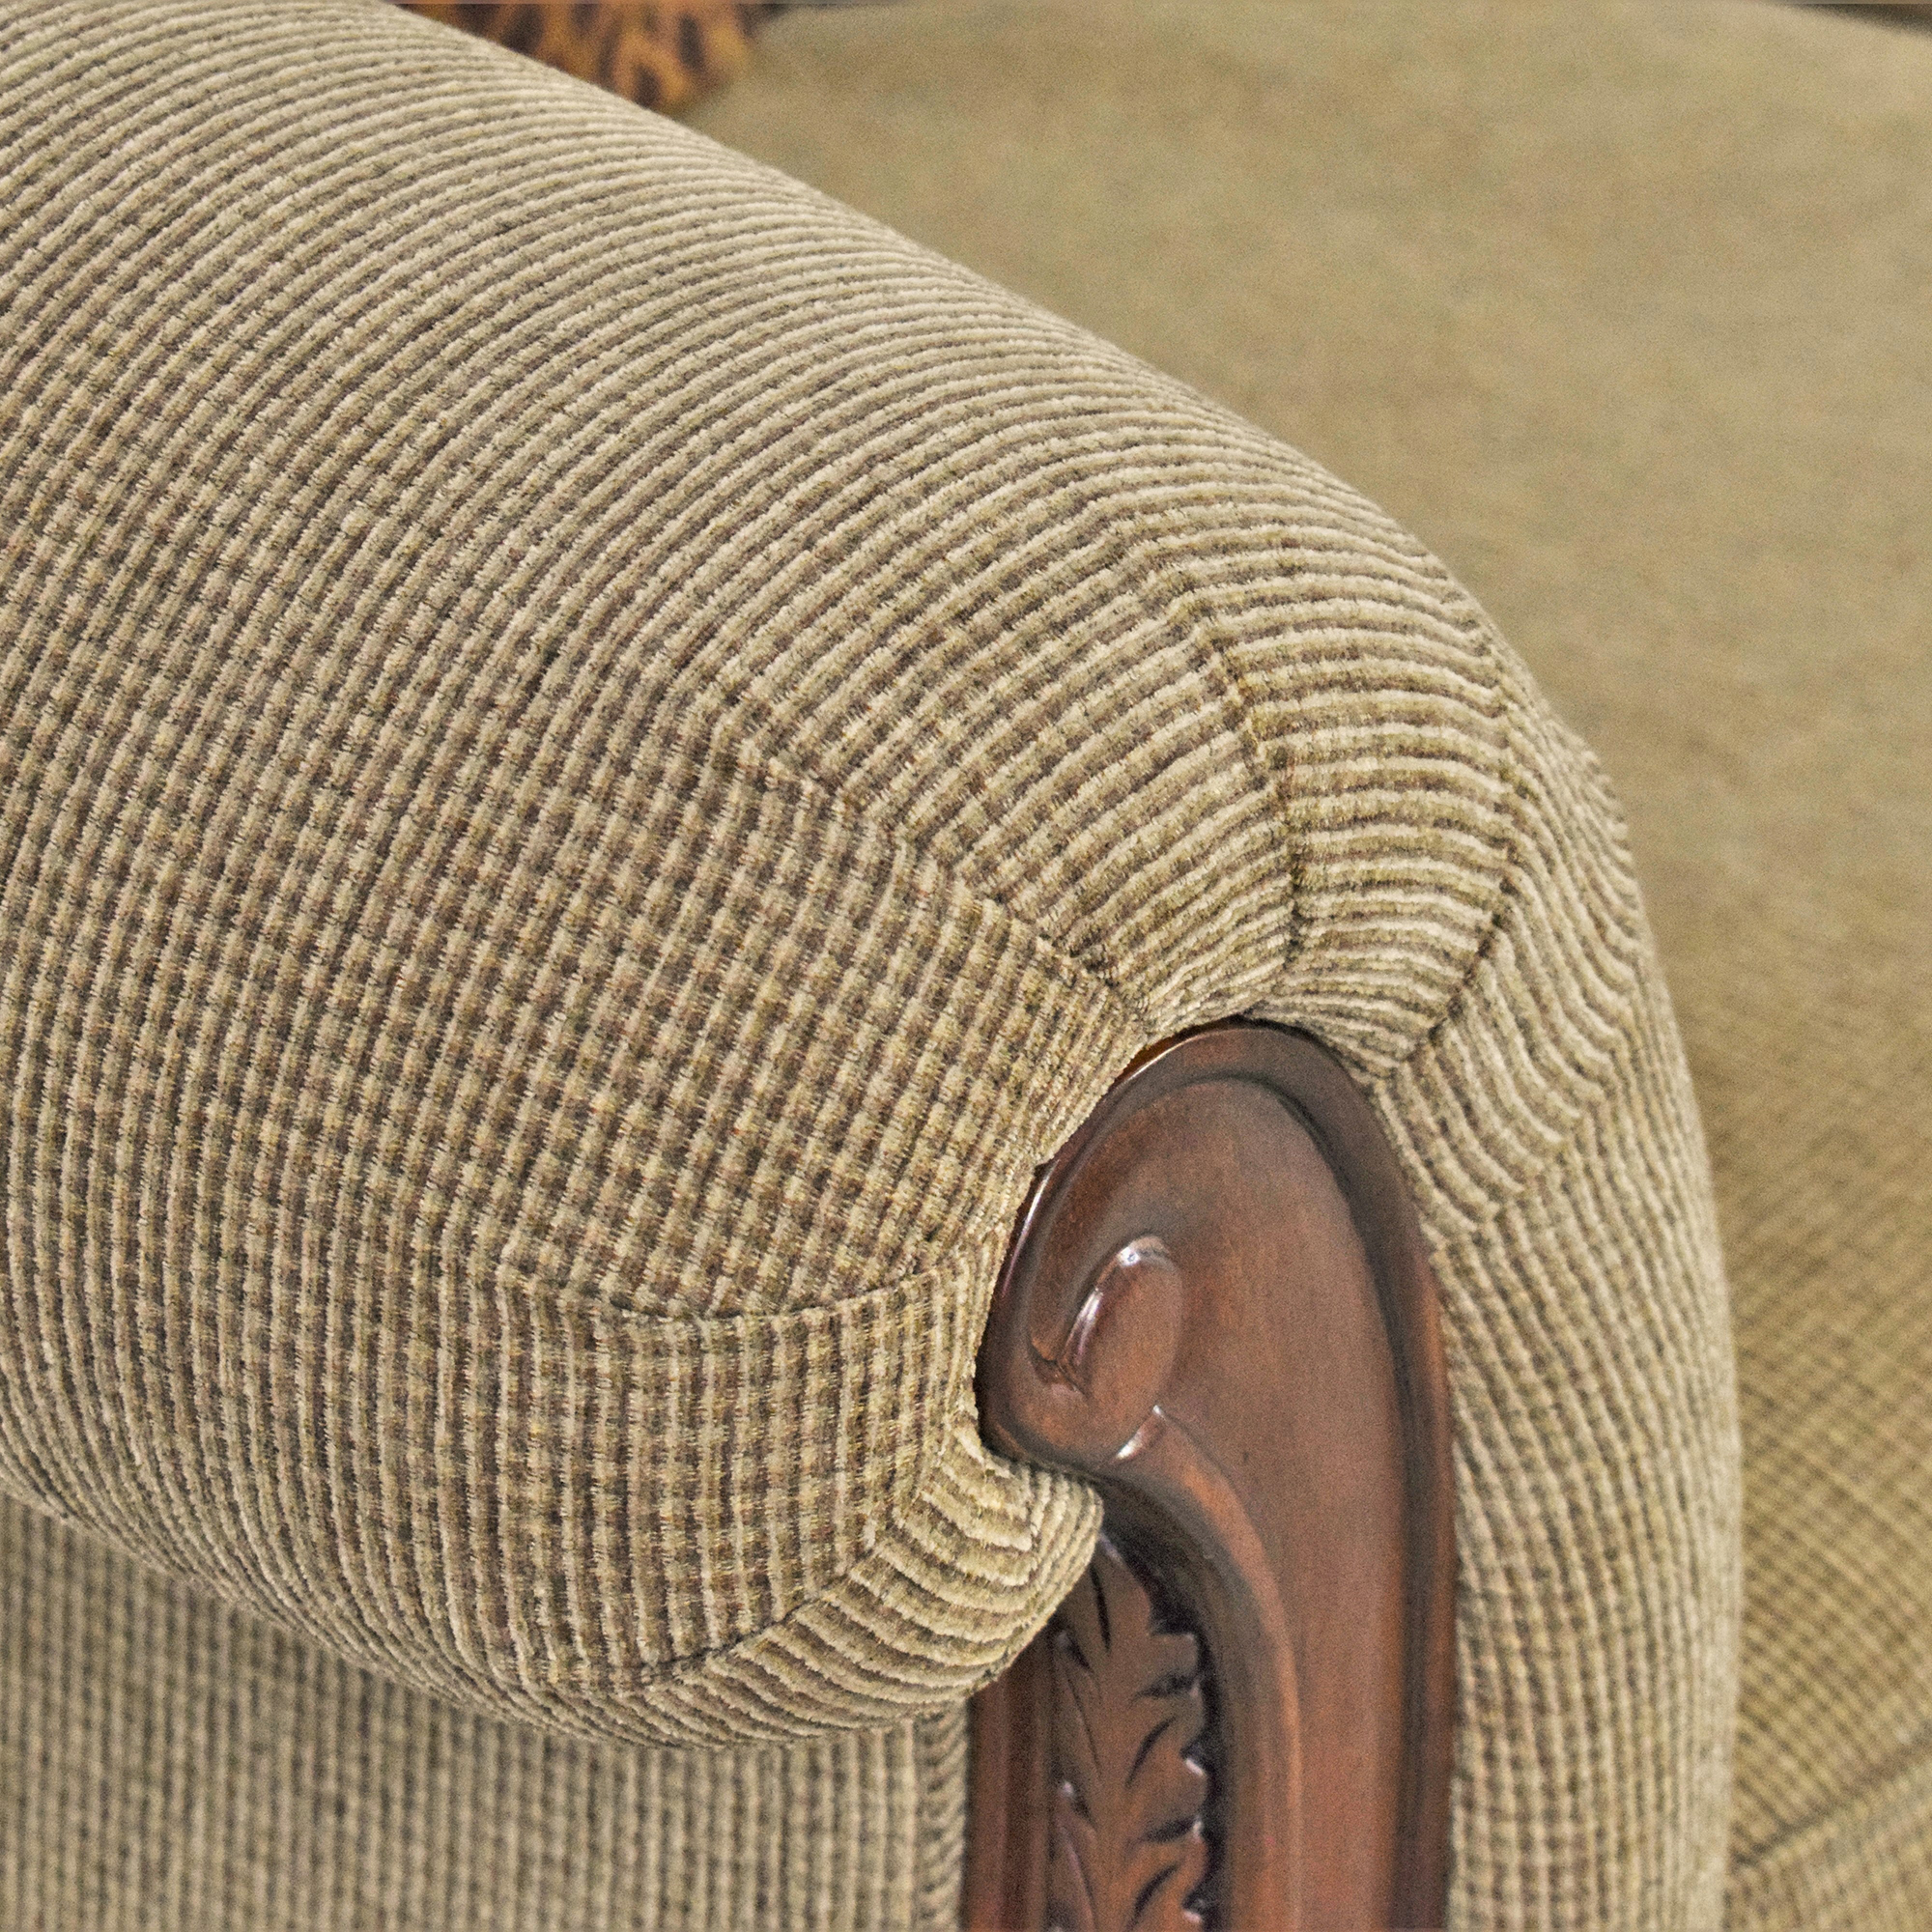 buy HM Richards Furniture Traditional Roll Arm Sofa HM Richards Furniture Classic Sofas